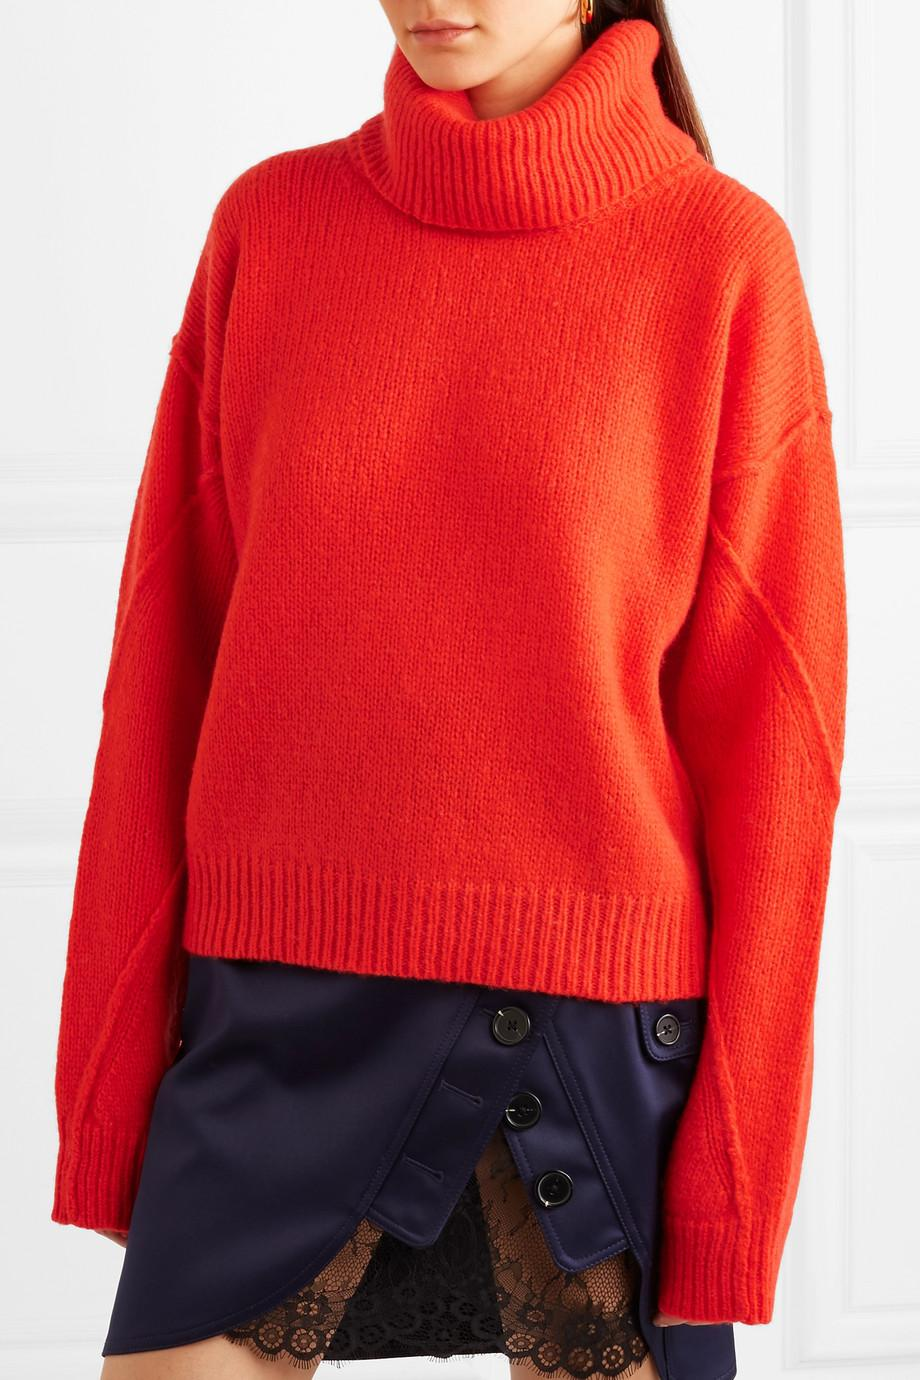 30a345c1da Lyst - Tory Burch Eva Convertible Oversized Wool-blend Turtleneck ...